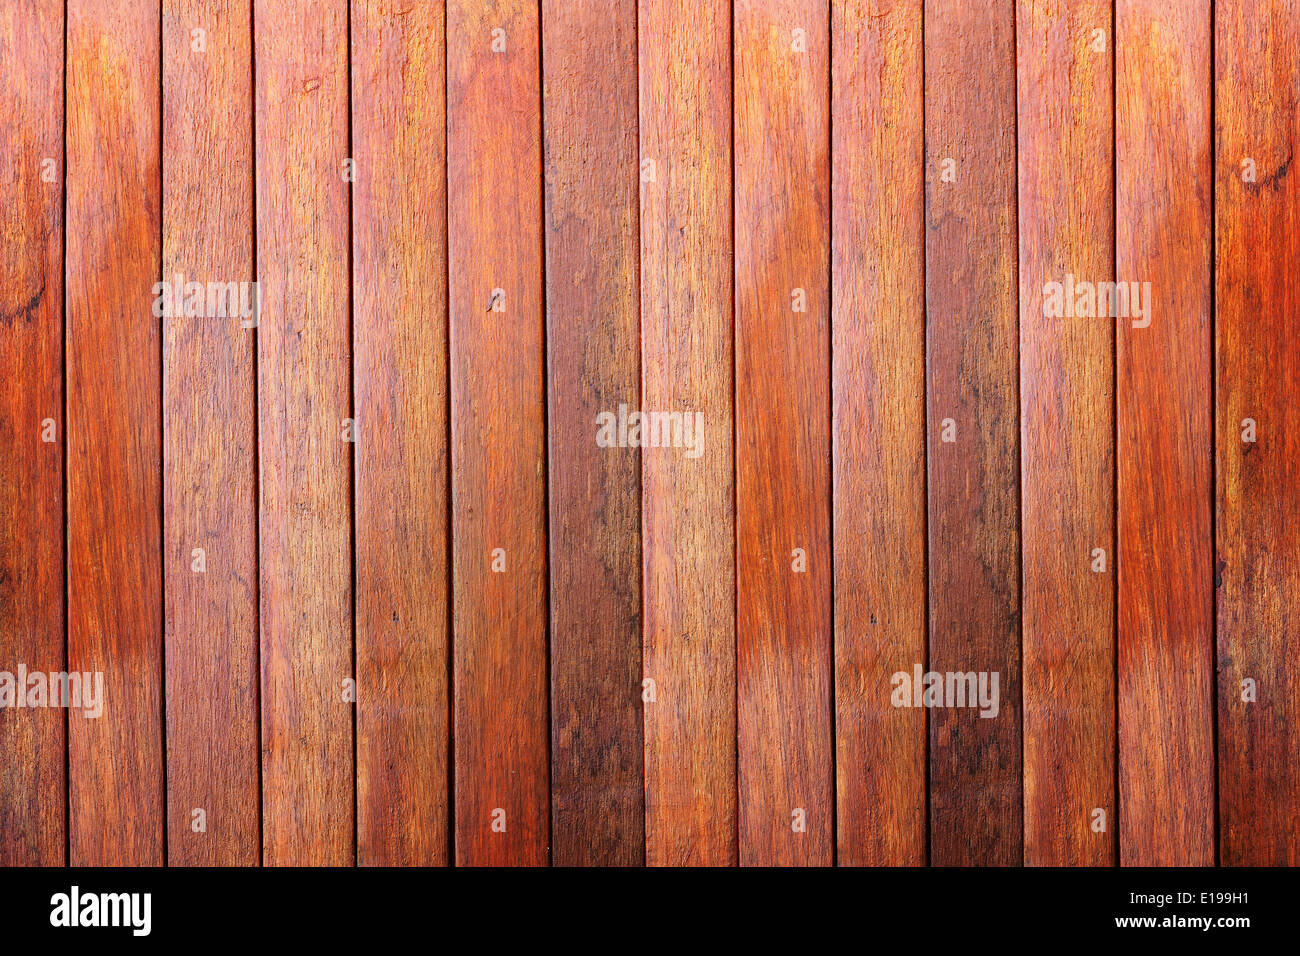 Wooden wall background made with vertical planks of hardwood - Stock Image